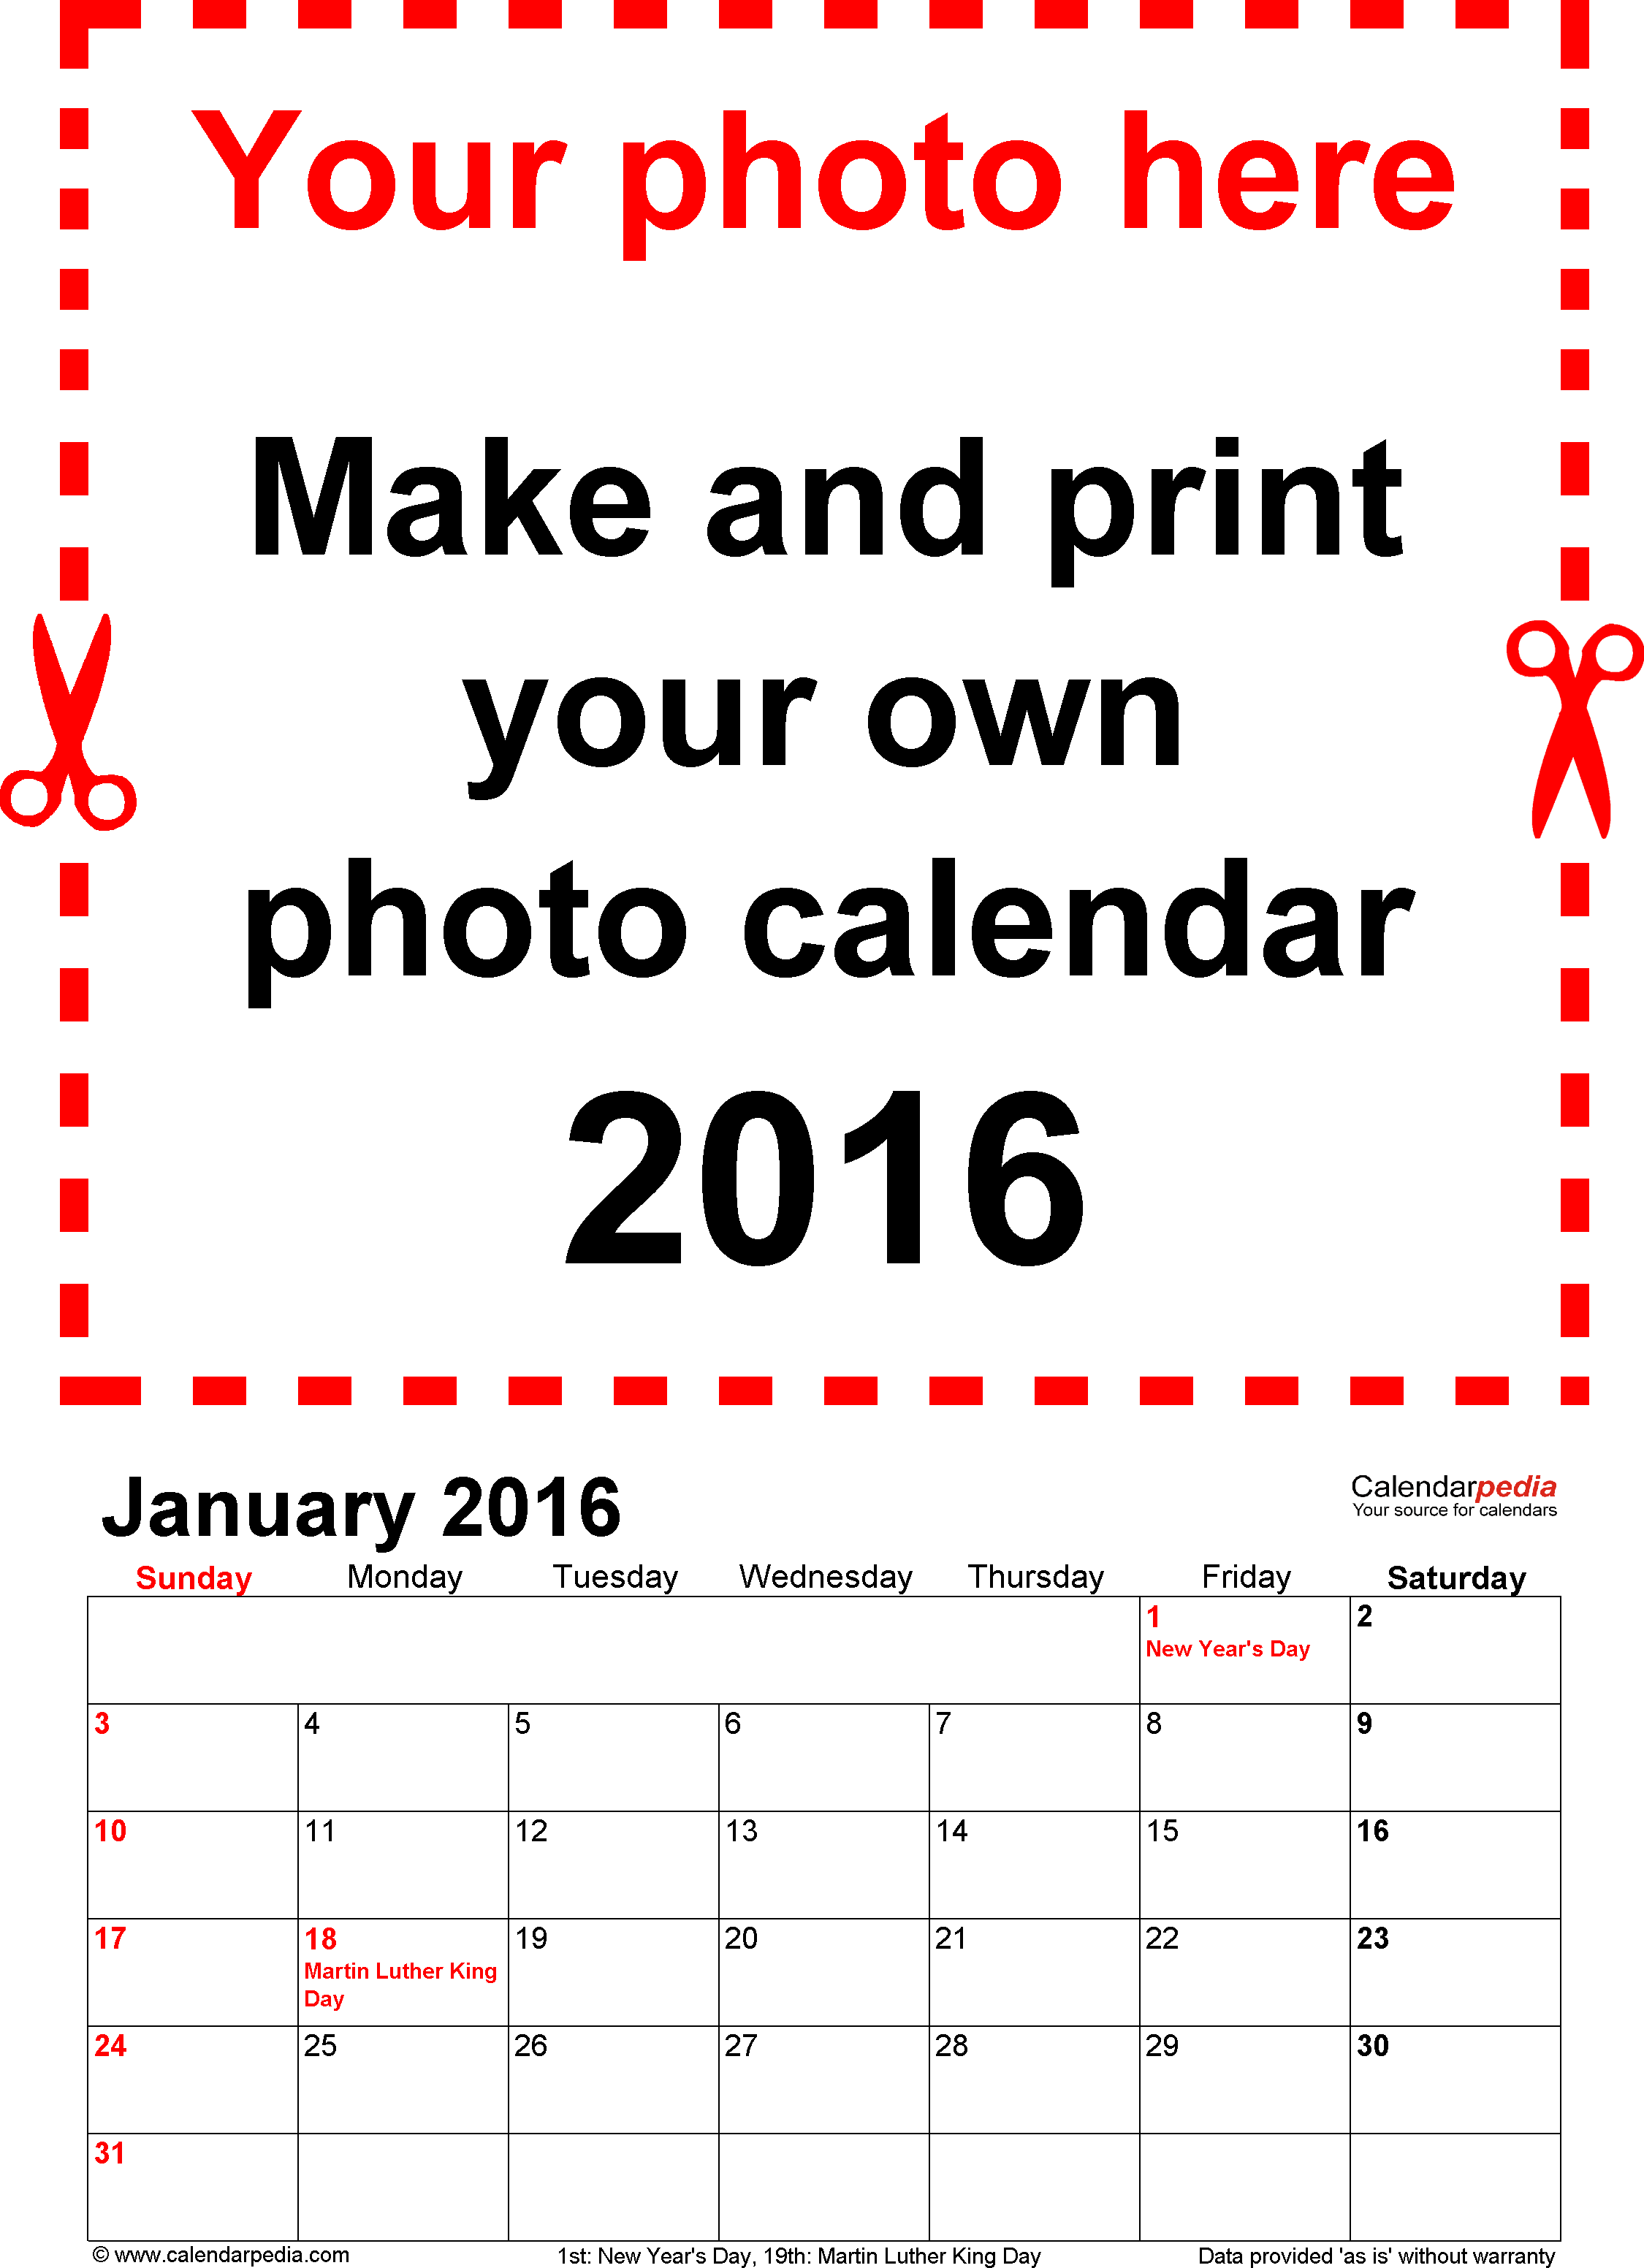 Template 1: Photo calendar 2016 for PDF, 12 pages, portrait format, standard layout